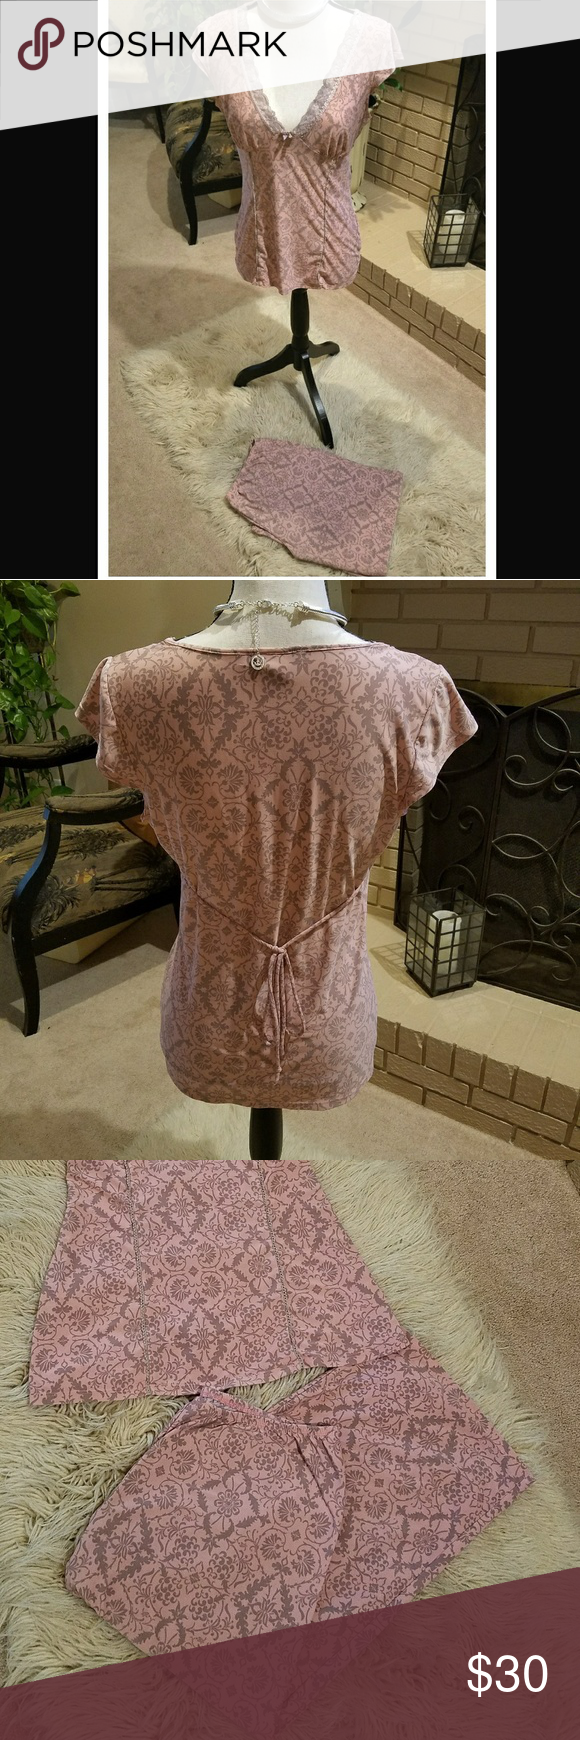 Linea Donatella pajamas LUV LUV LUV THESE! i have too many tho! Sz small..fits like a medium SOOO SOFT pretty blush pink w/grey &Pretty lace detail Plunging neckline gives it a classy sexy appeal all while ur in luxurious comfort !  The Pleated details make them very figure flattering Will model upon request but may just have to keep if i put them on! -SERIOUSLY..u want find nicer/more comfy pjs so pretty! Capri bottoms=elastic waist Purchased at macys for $65 No flaws.worn maybe 2xs…